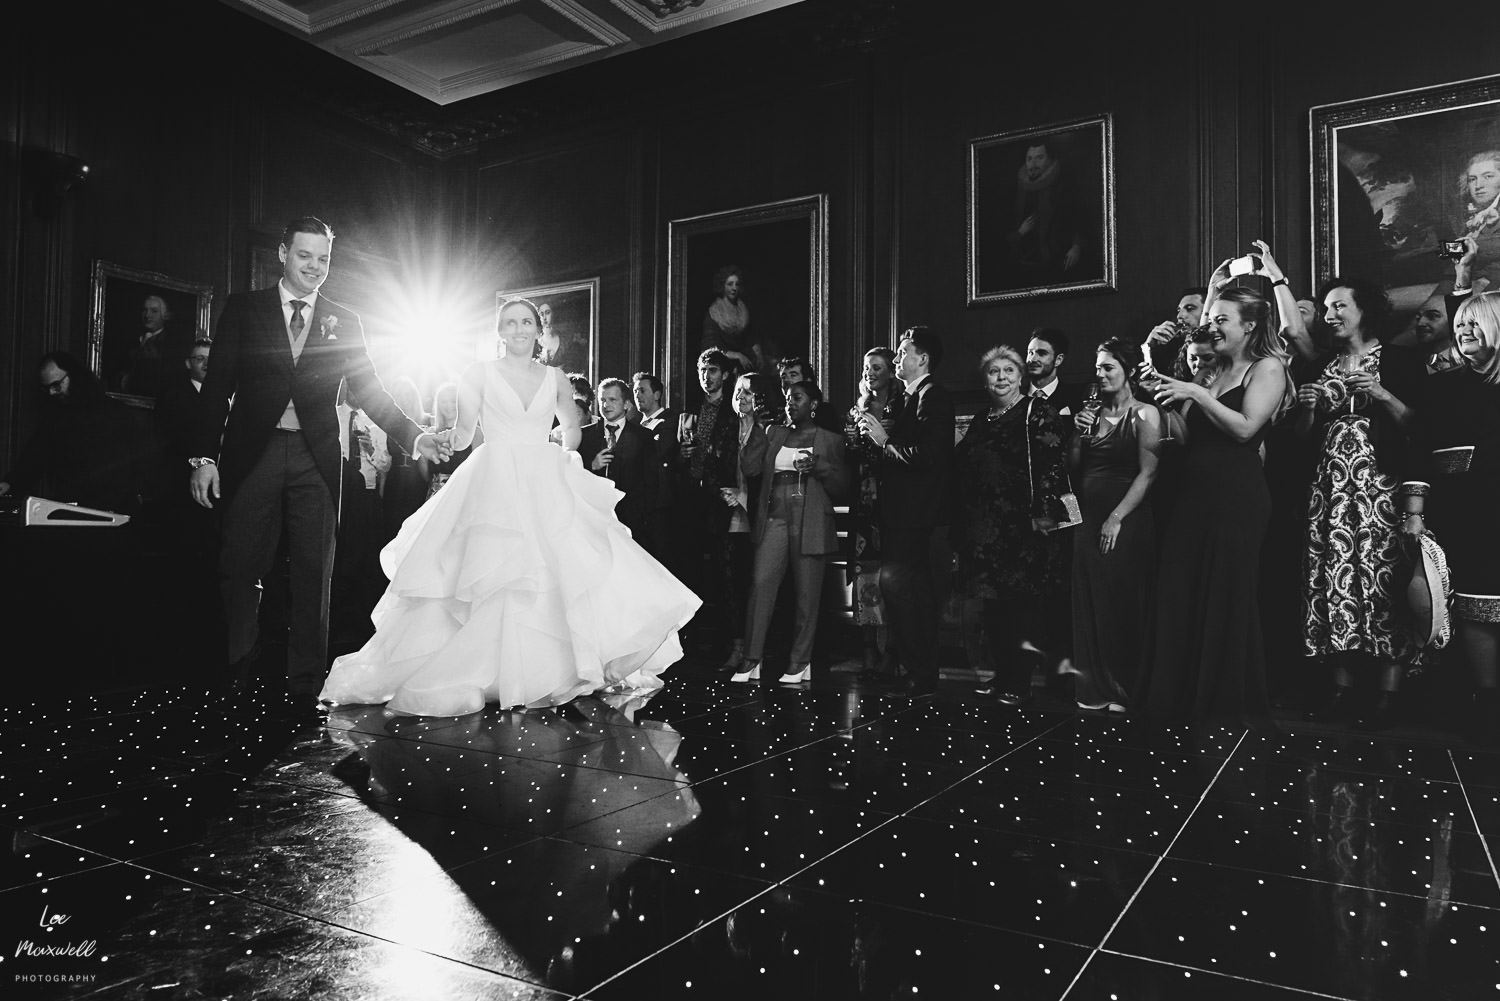 Walking onto the dance floor at Cowdray Estate